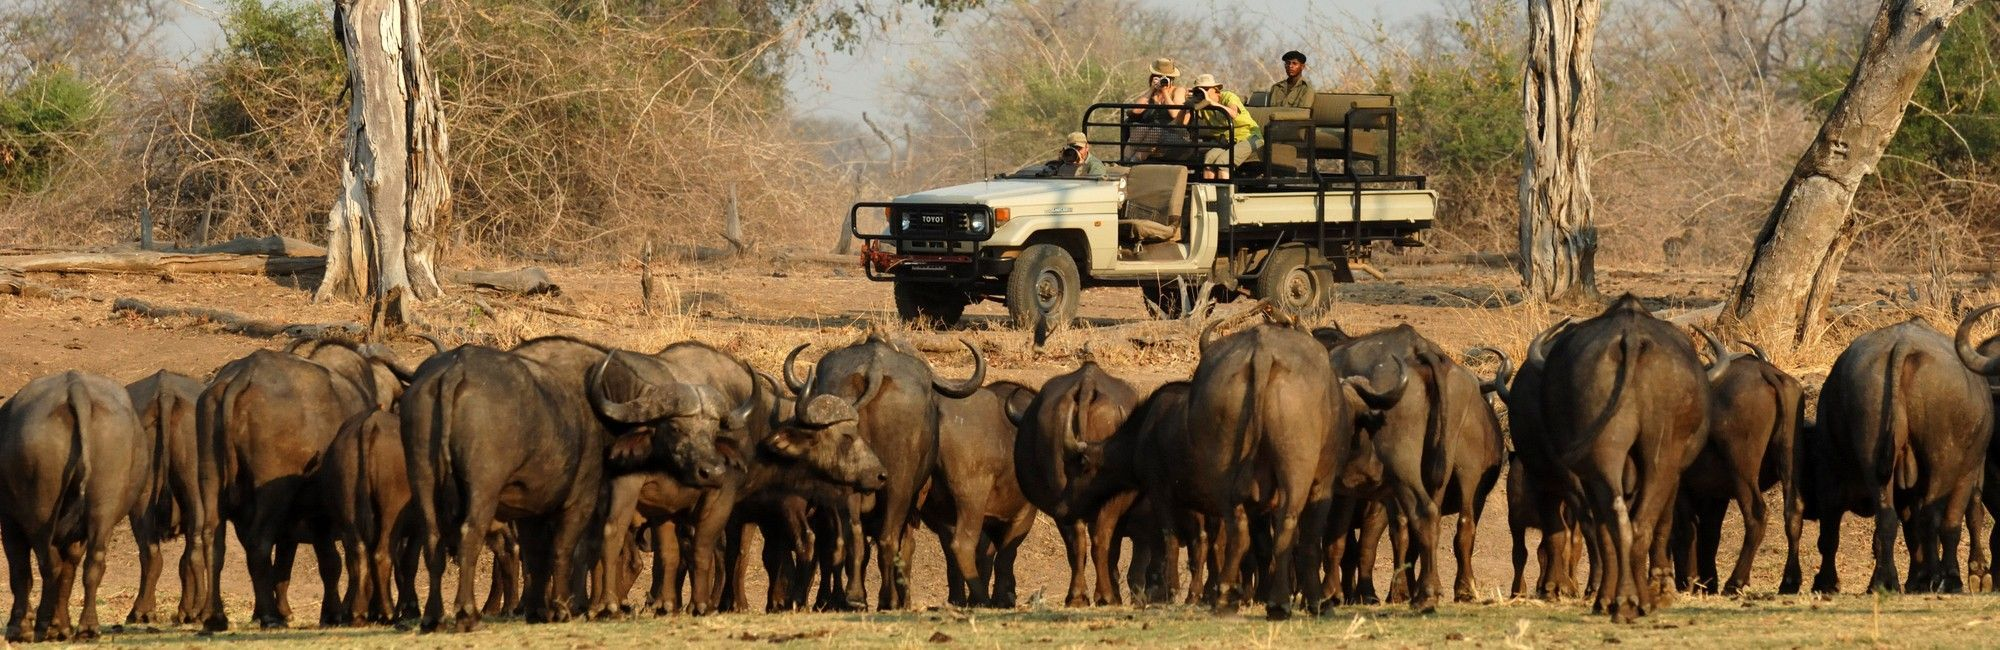 Zambia Game drive buffel